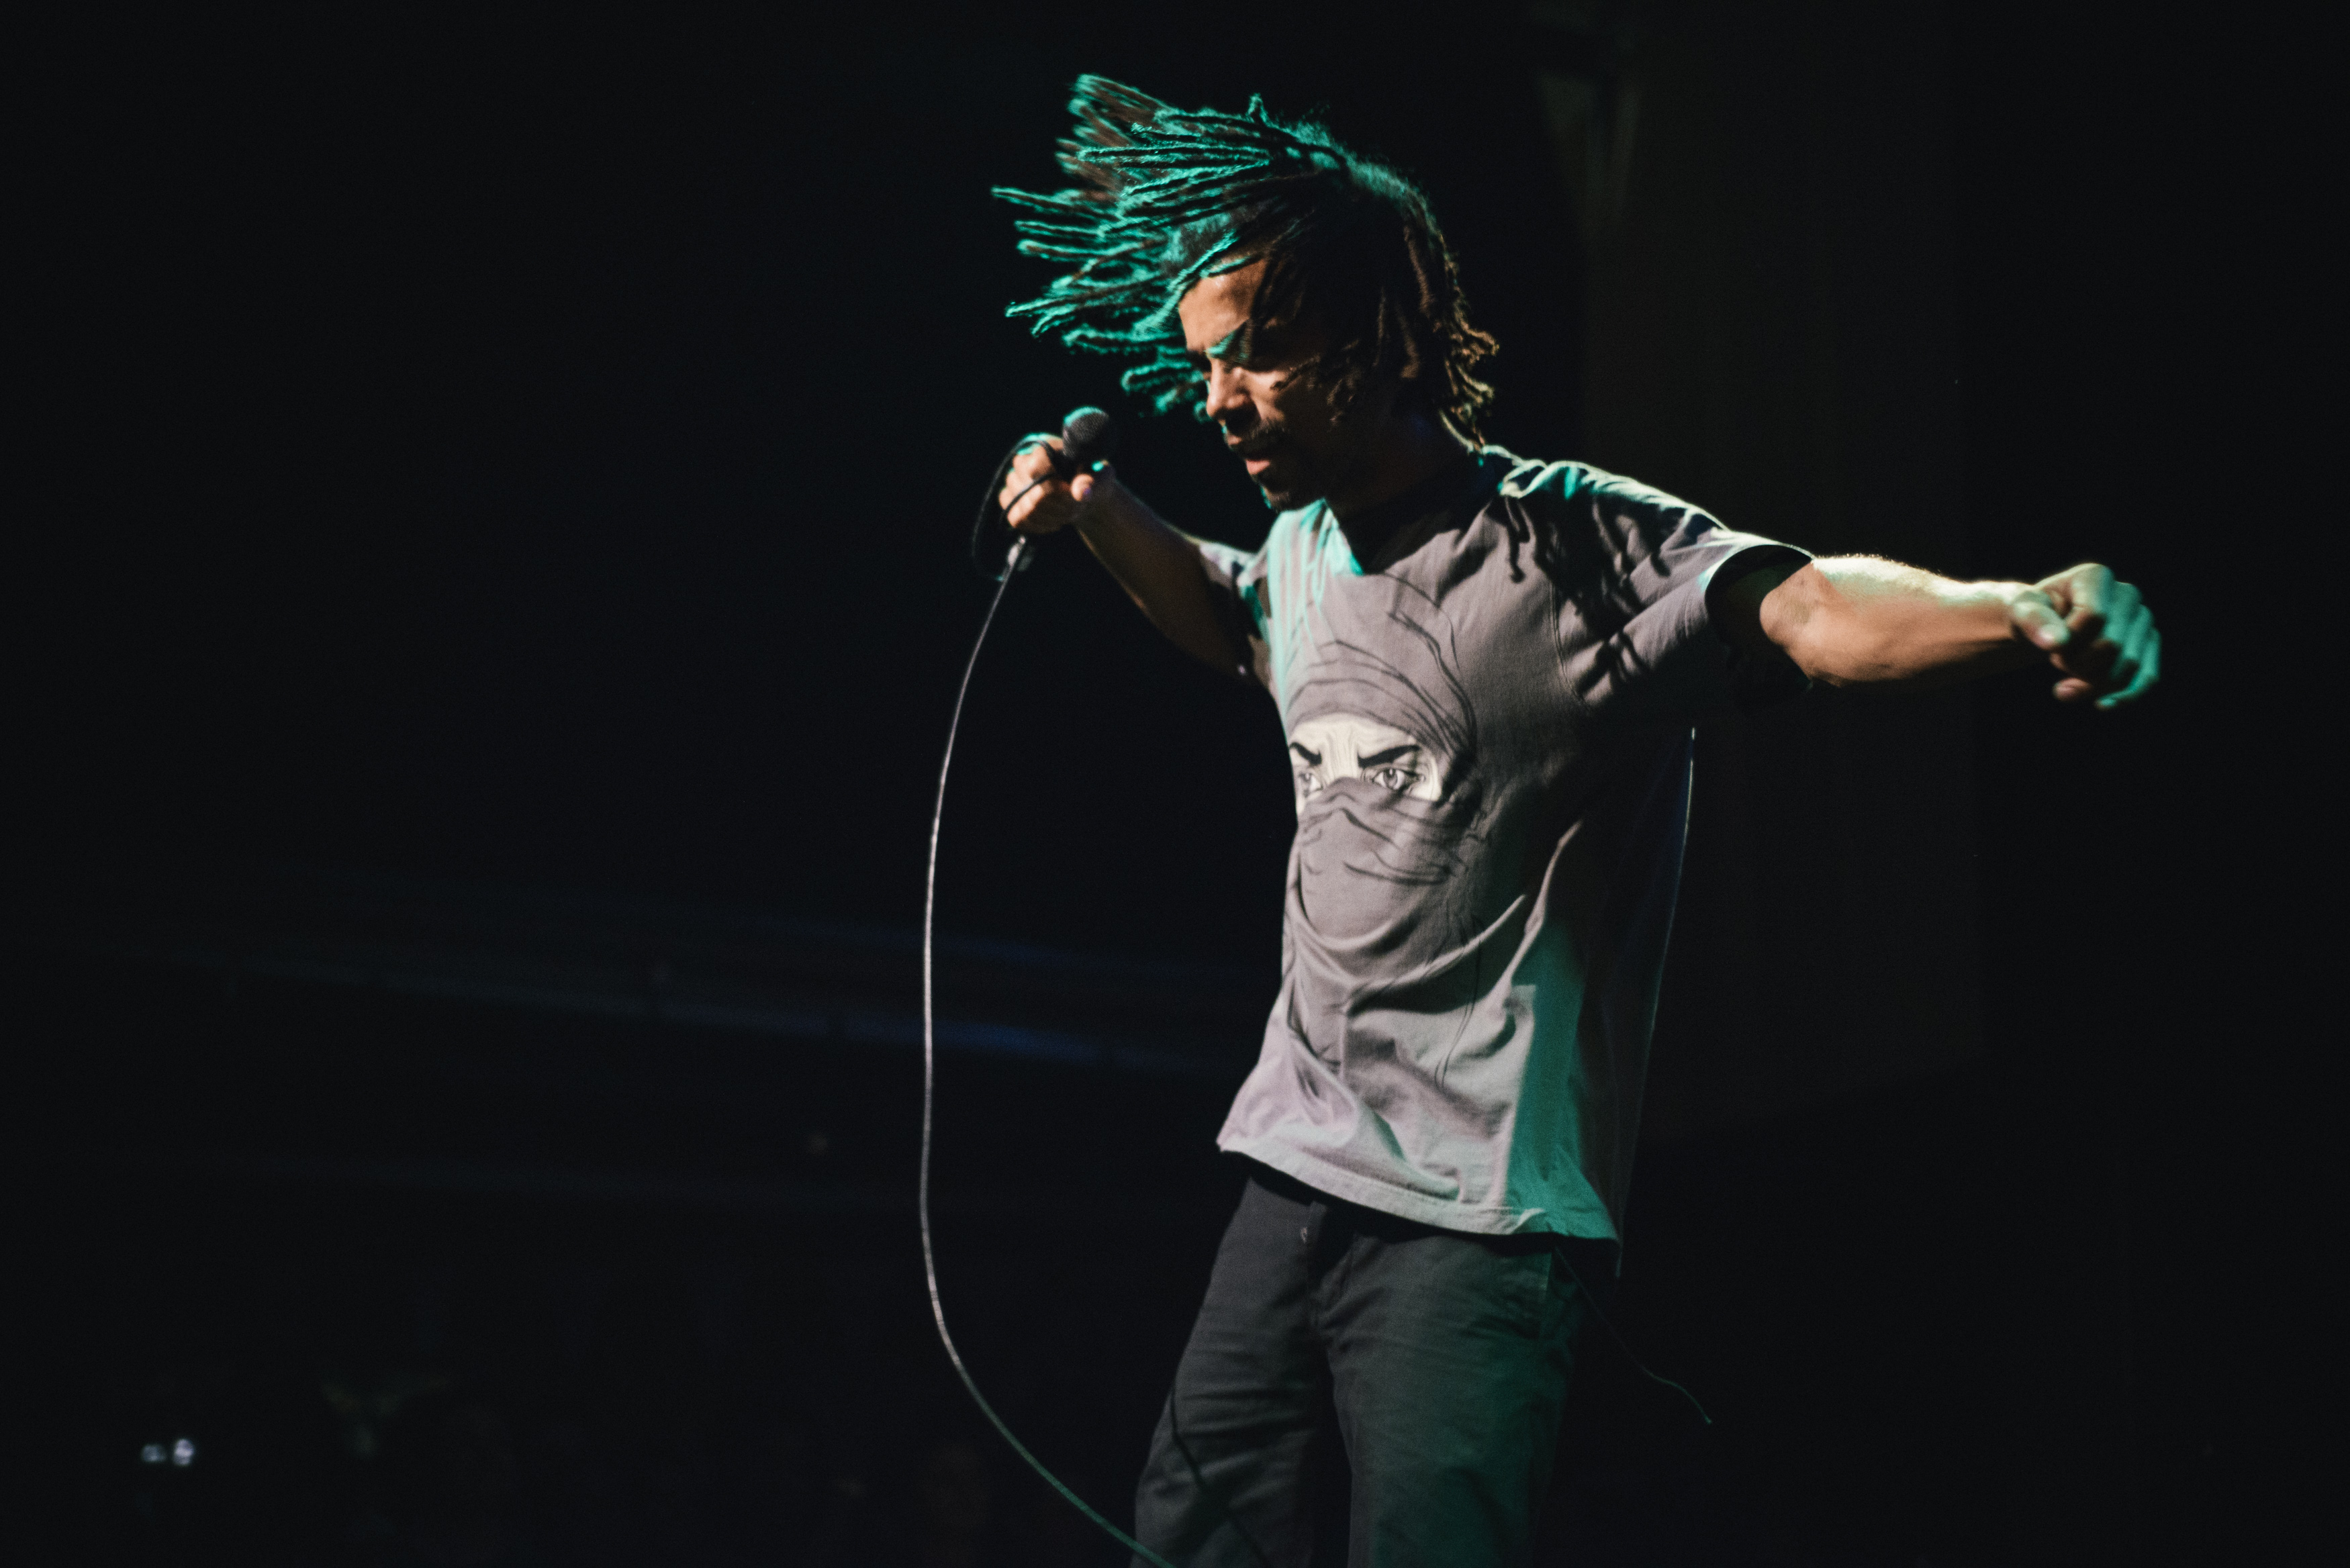 Akala @ Rick Mix for Refugee Week produced by Counterpoints Arts. Photo © Marcia Chandra.